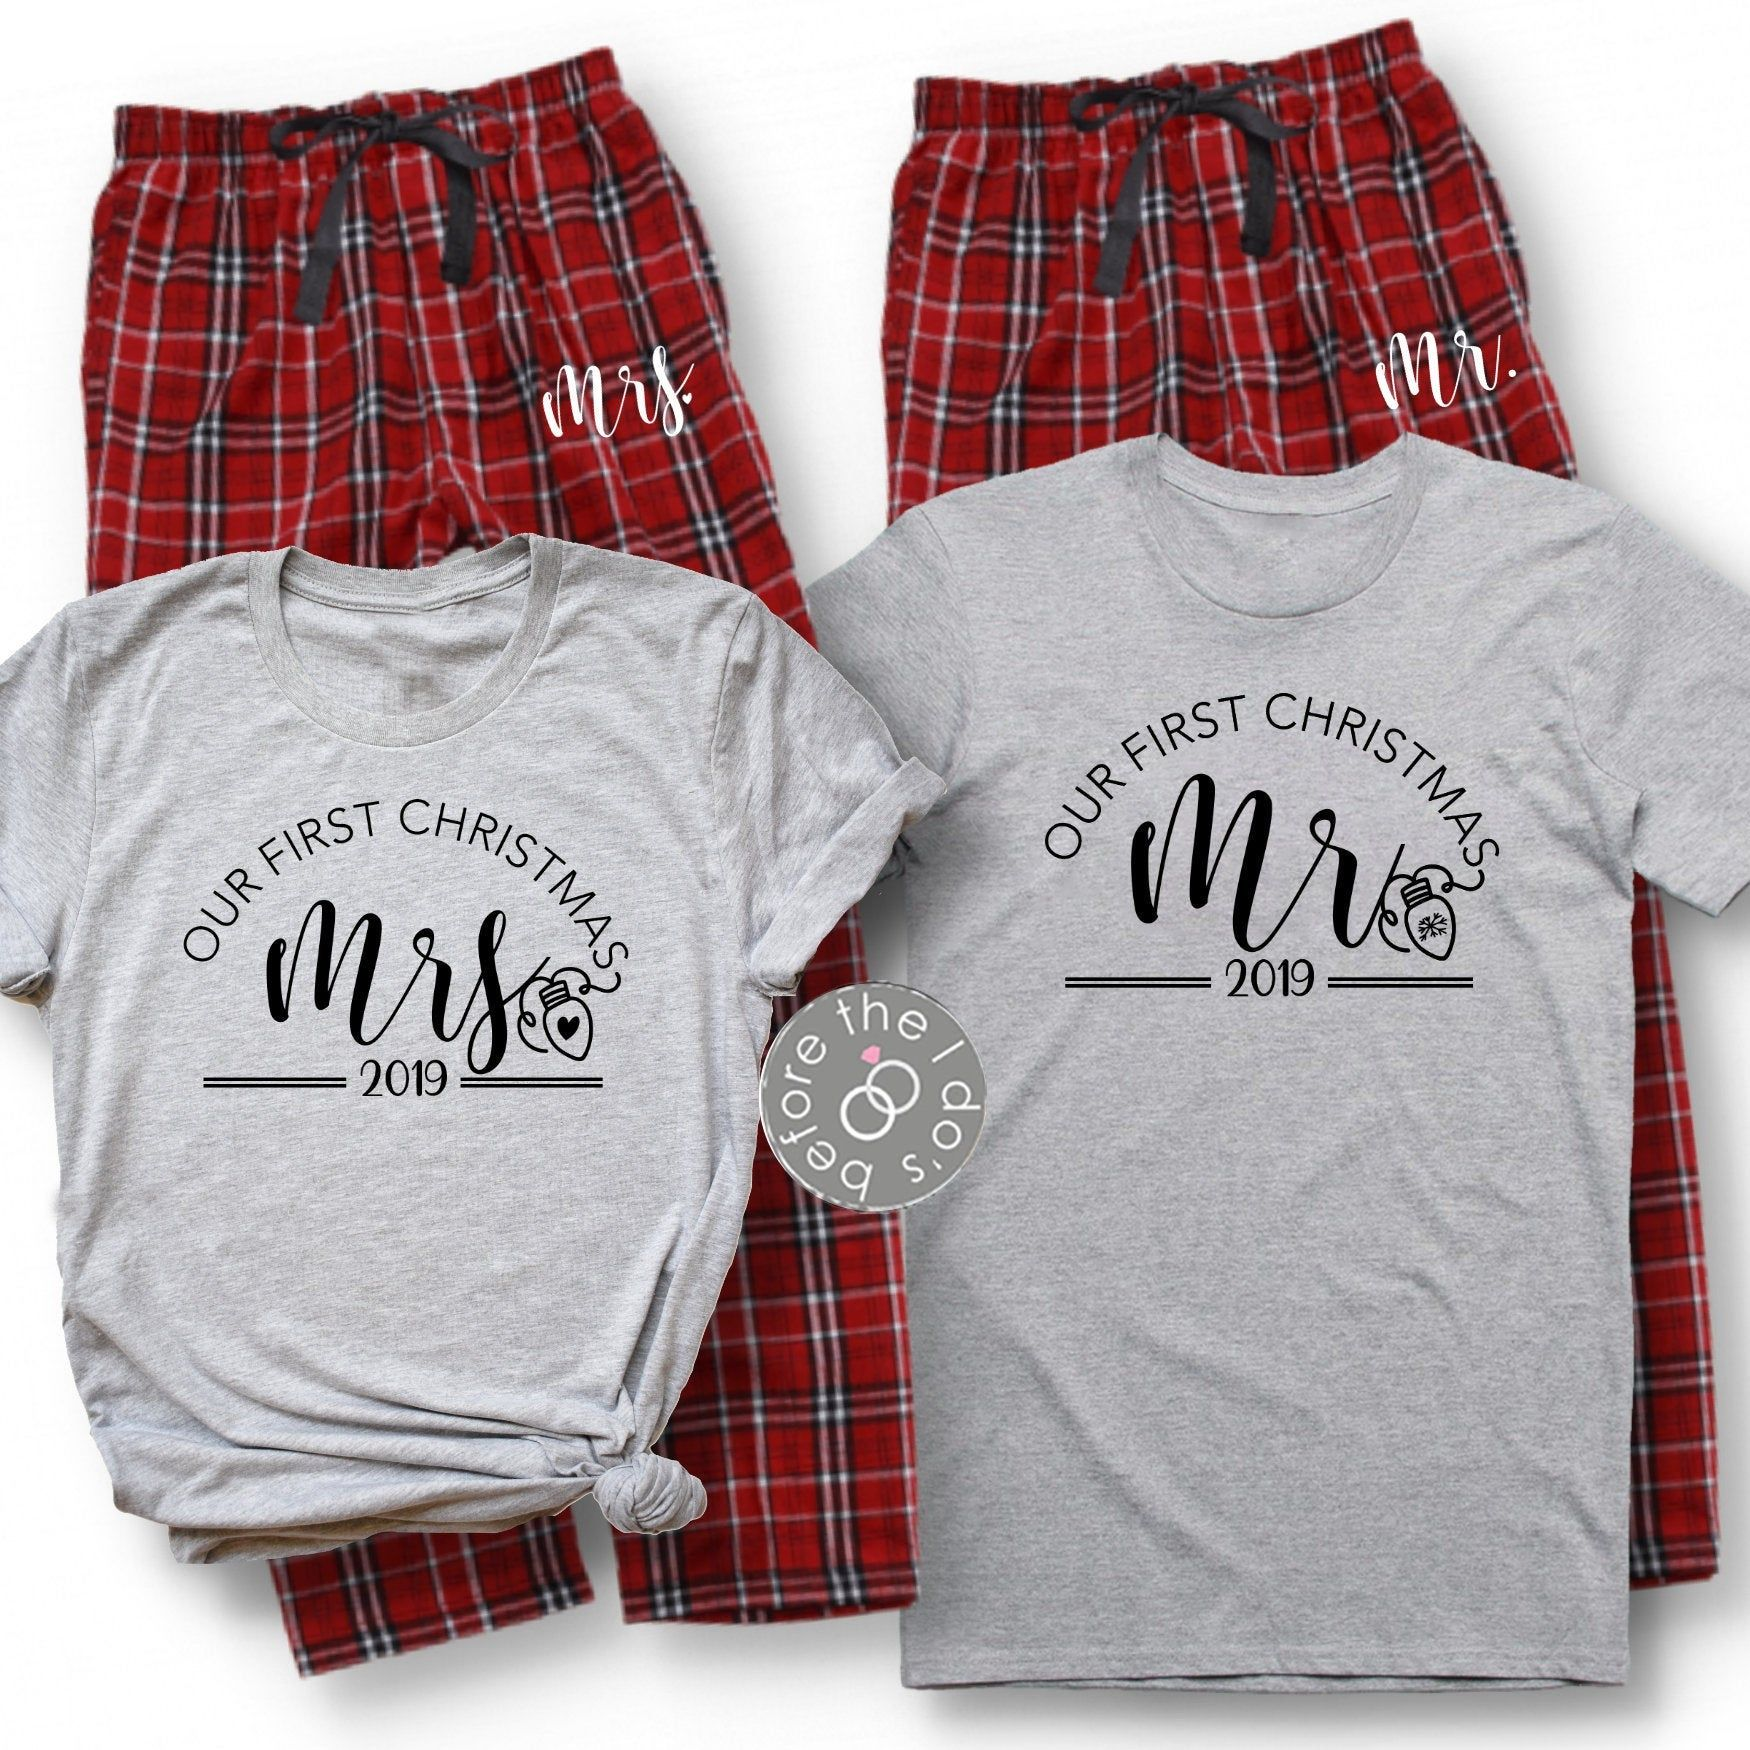 couple shirts his and hers married Christmas Our first Christmas matching Christmas Day shirts family matching Christmas shirts